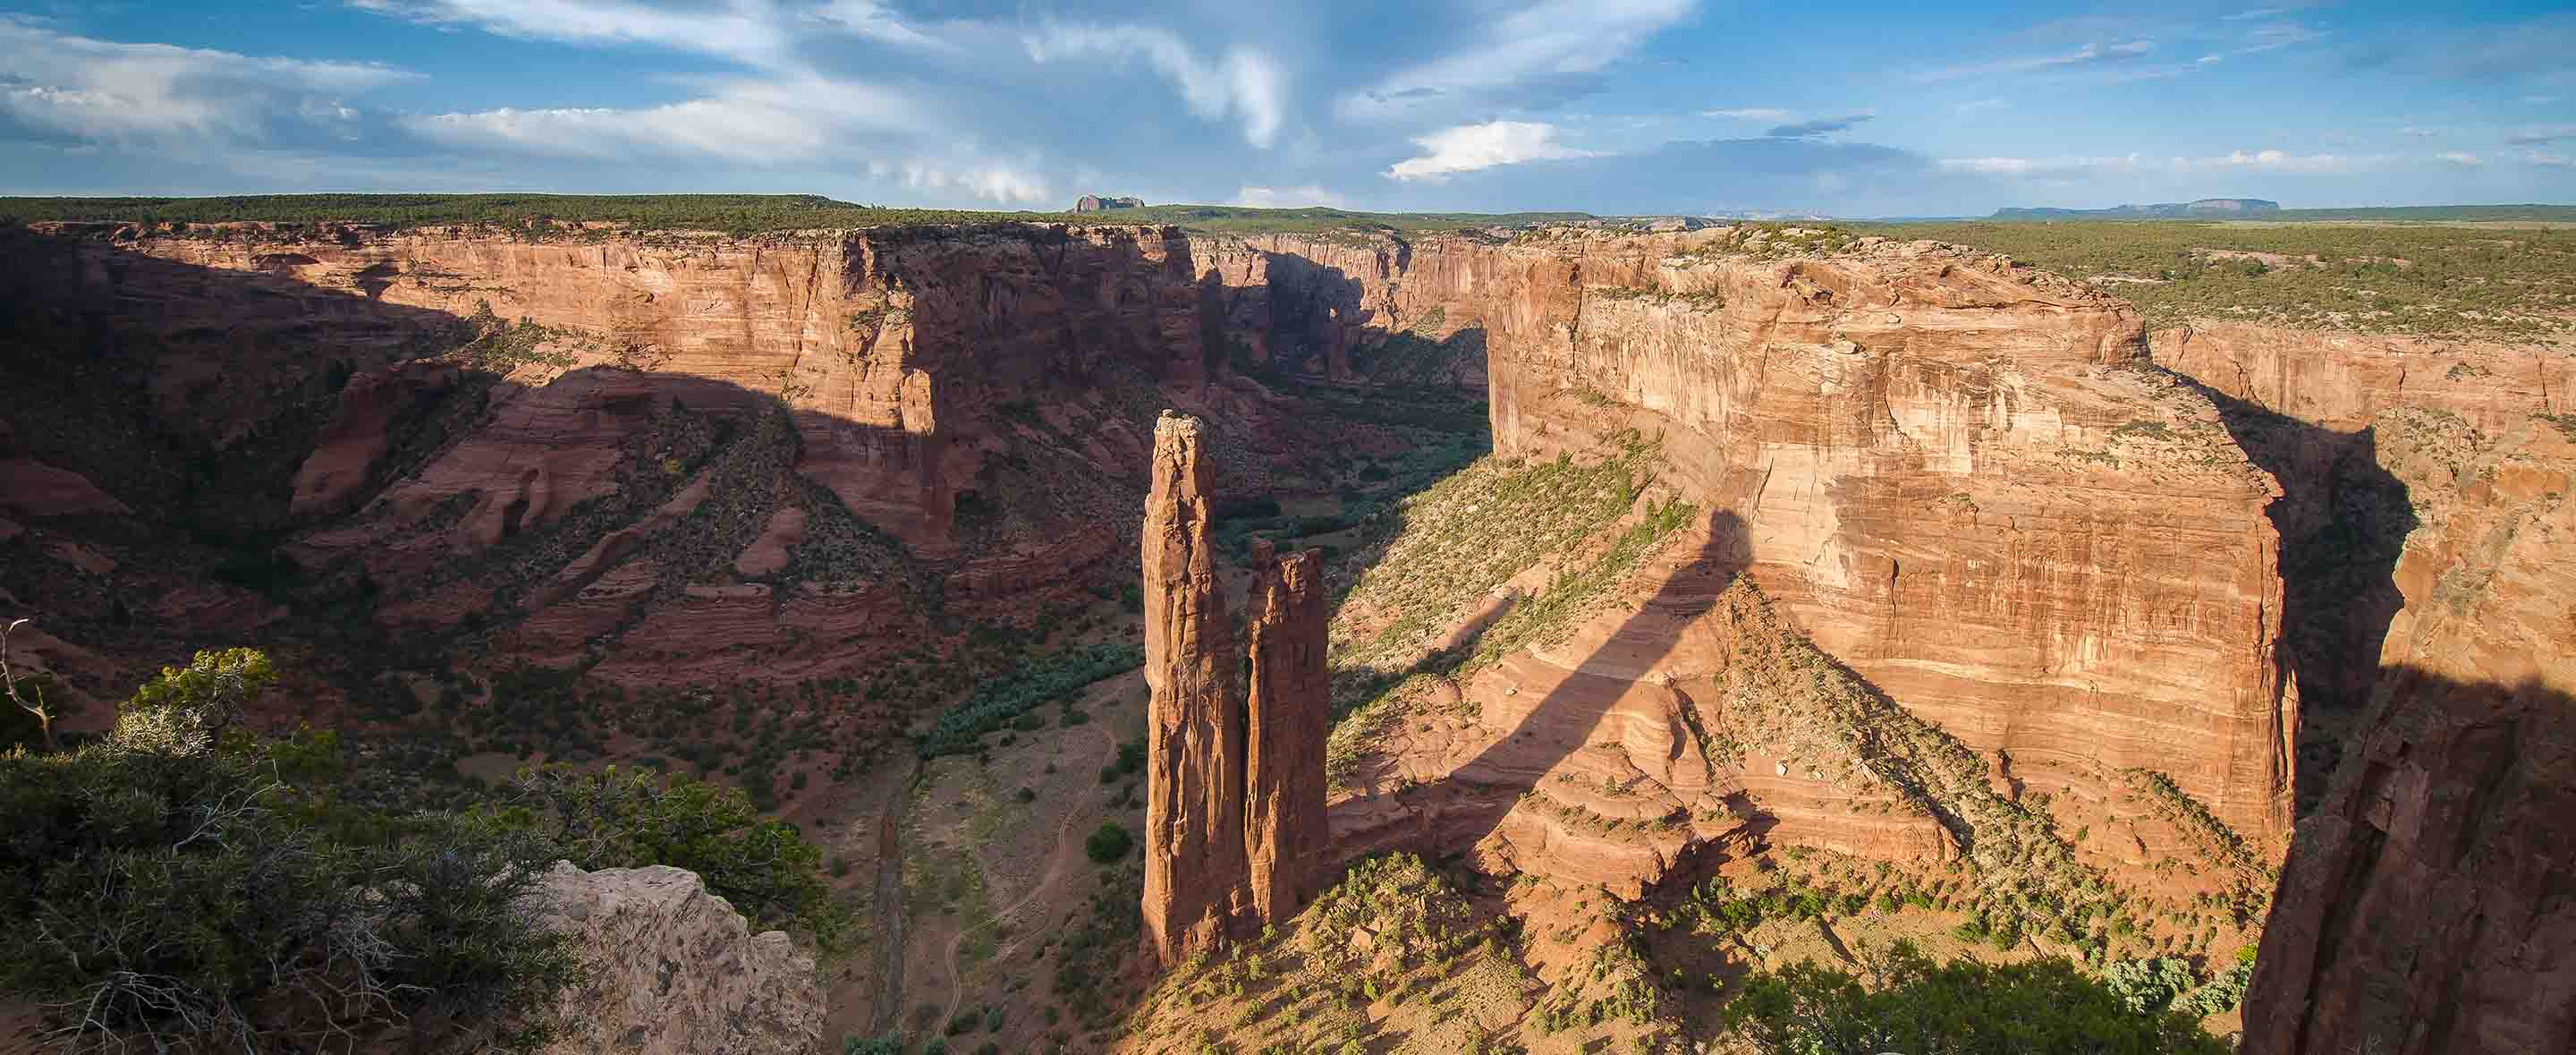 View of Spider Rock in Canyon de Chelly,Arizona